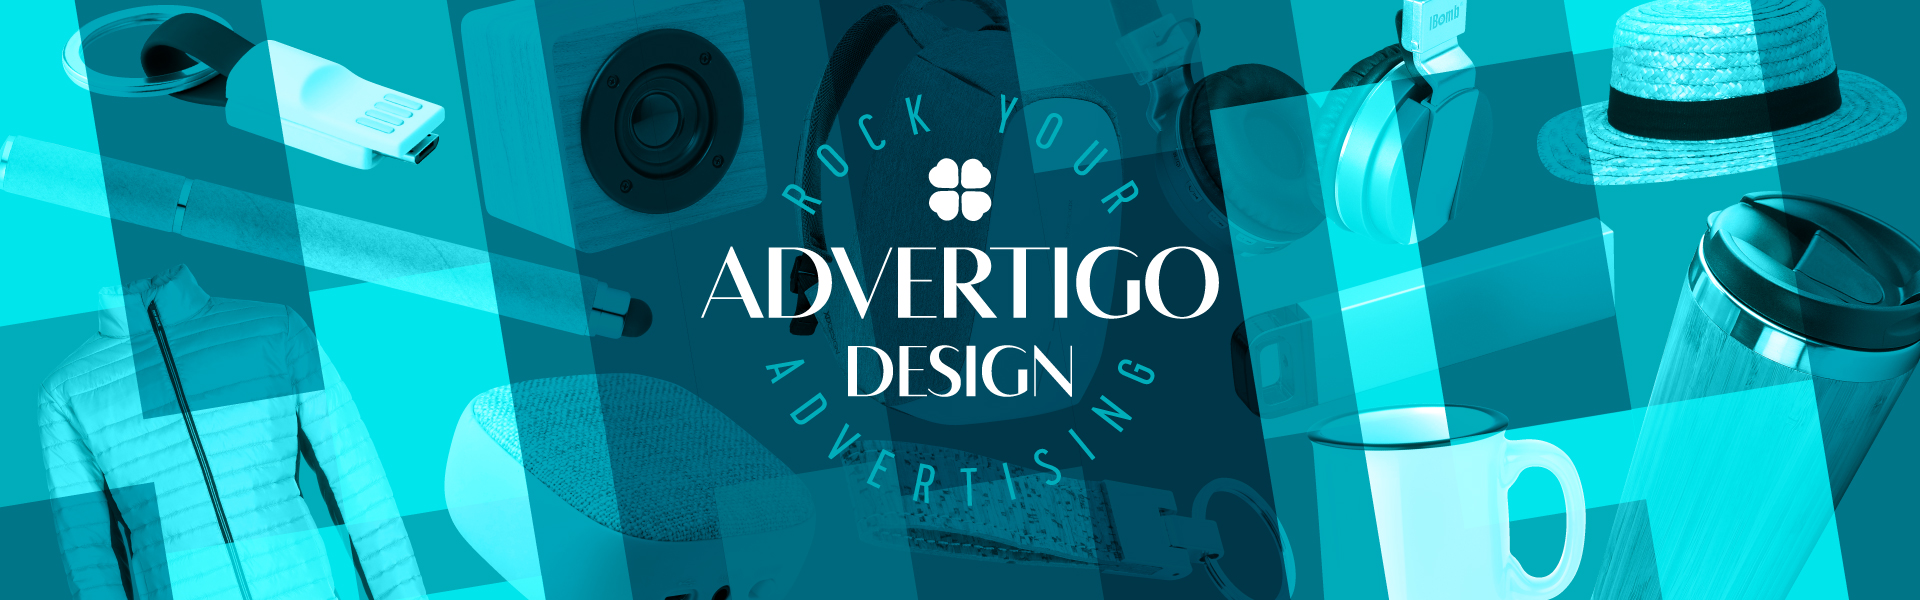 Advertigo Design - Design & Communication